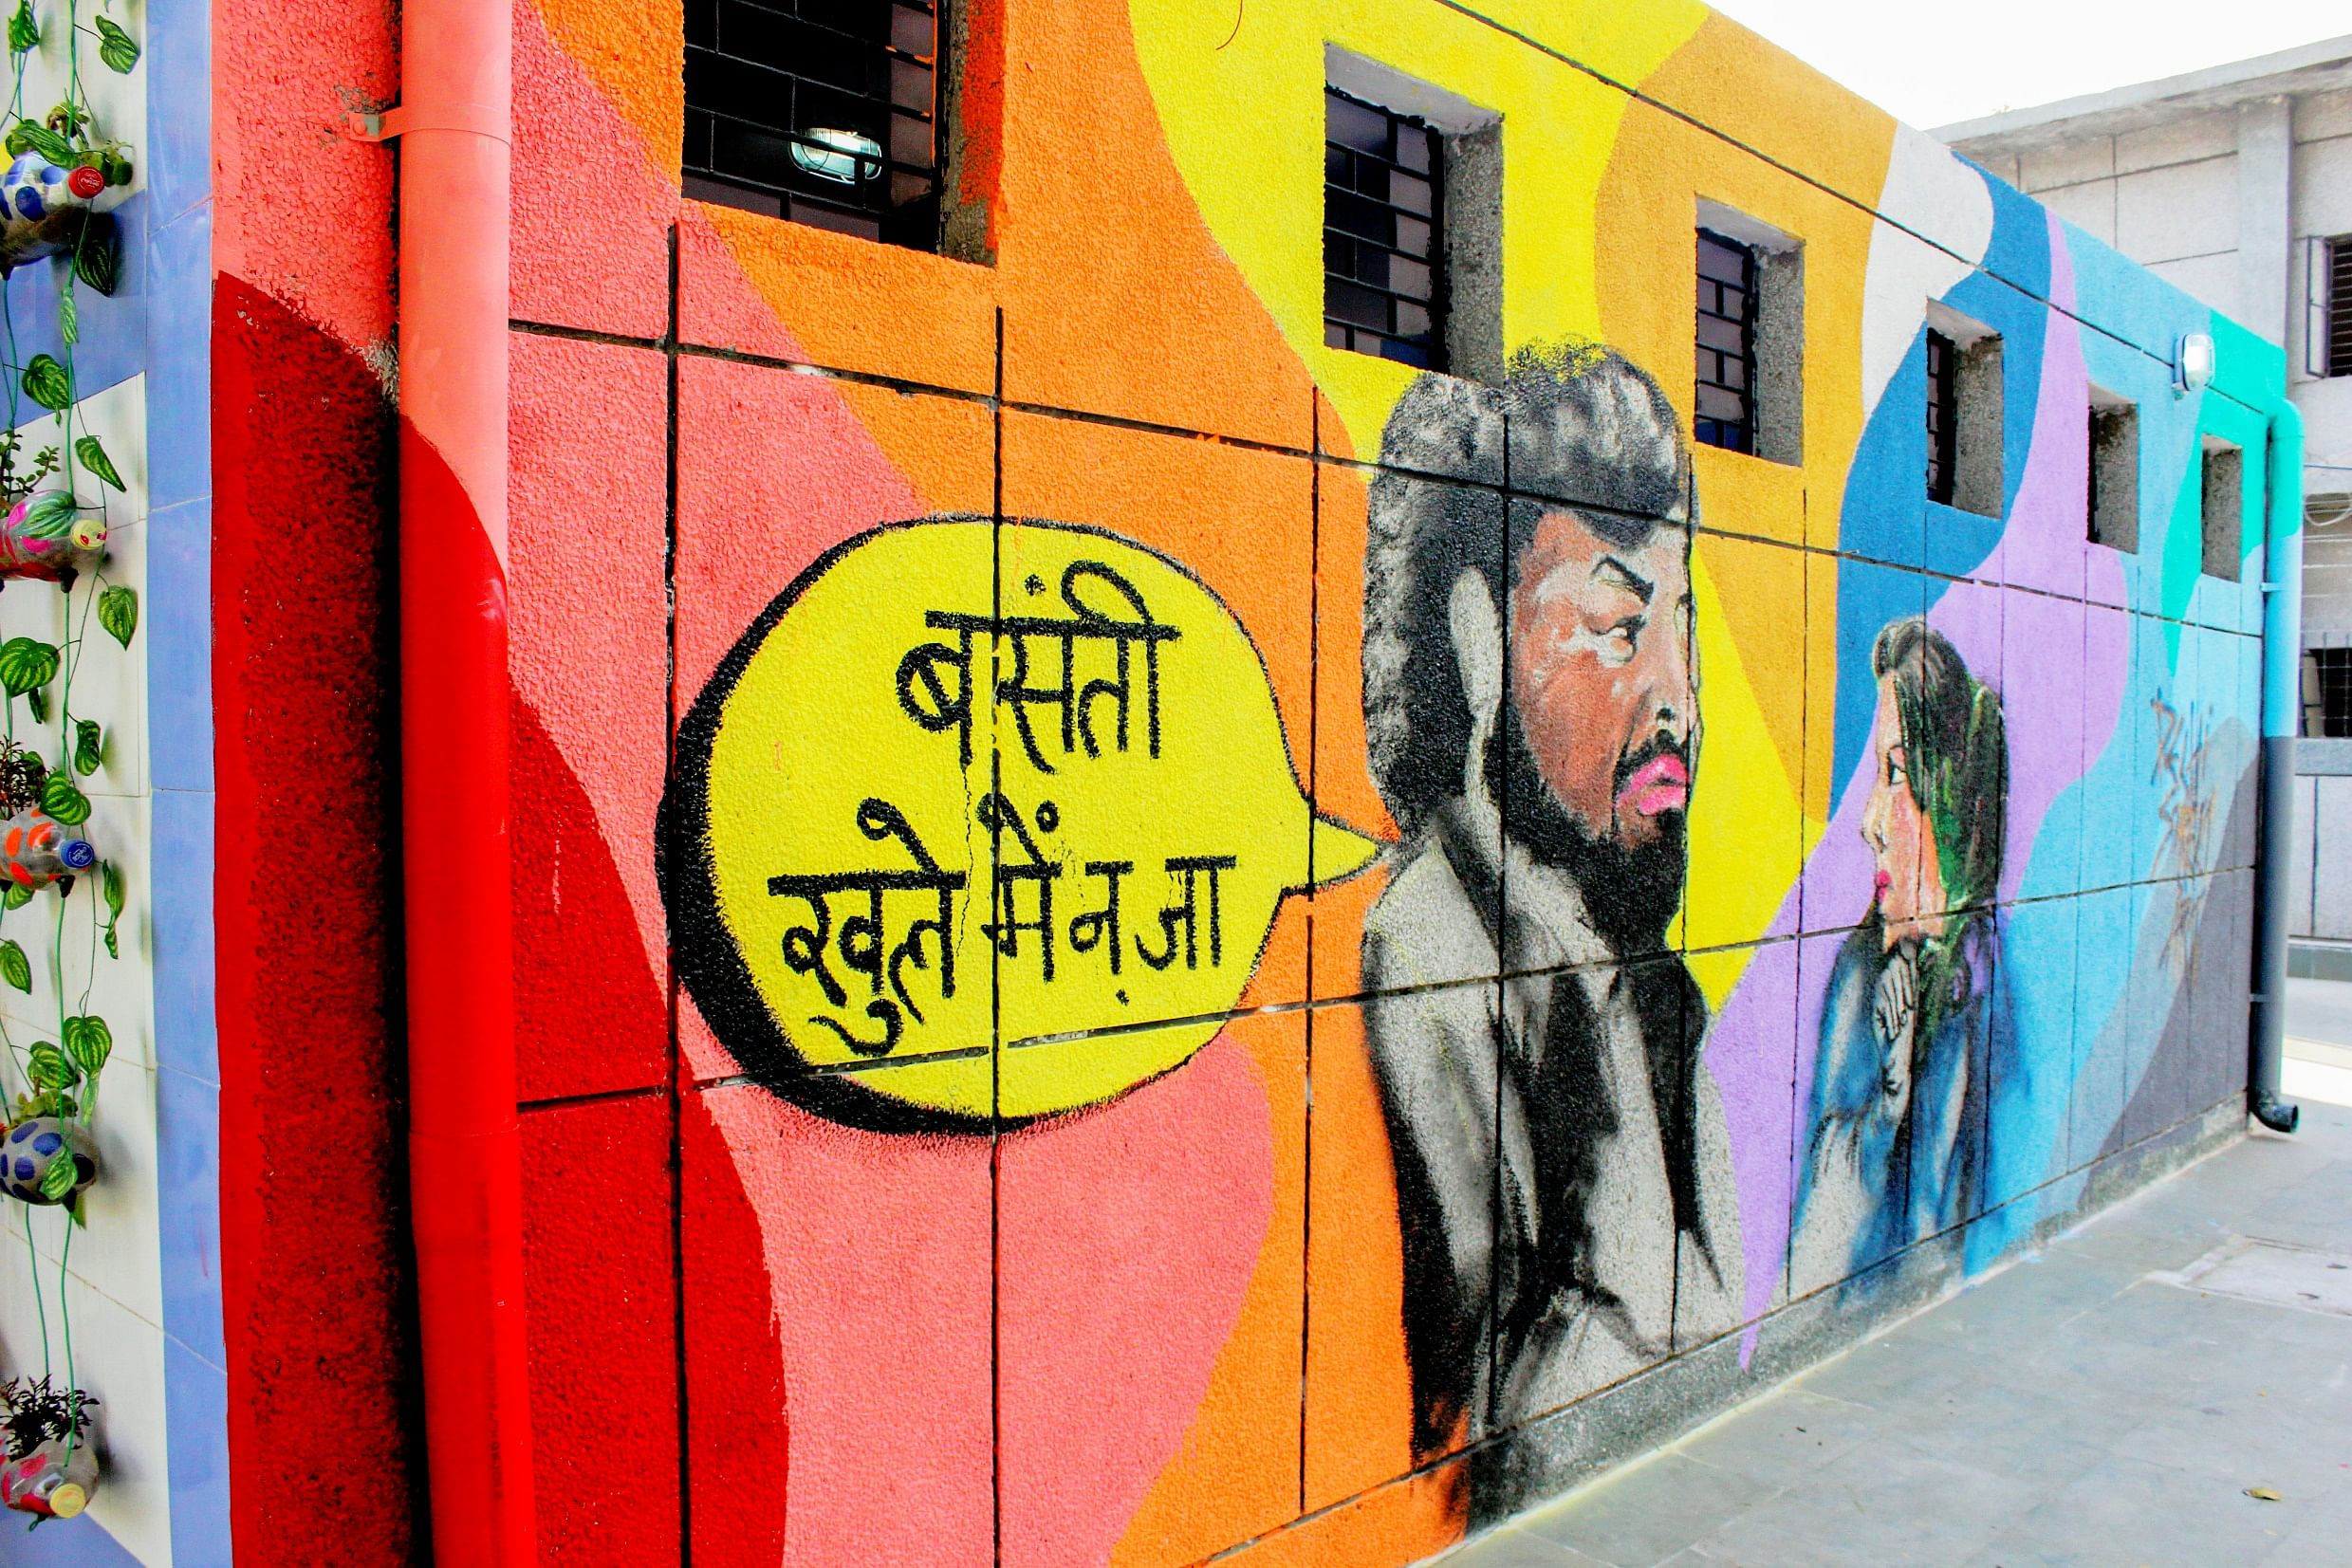 sultanpuri-wall-art